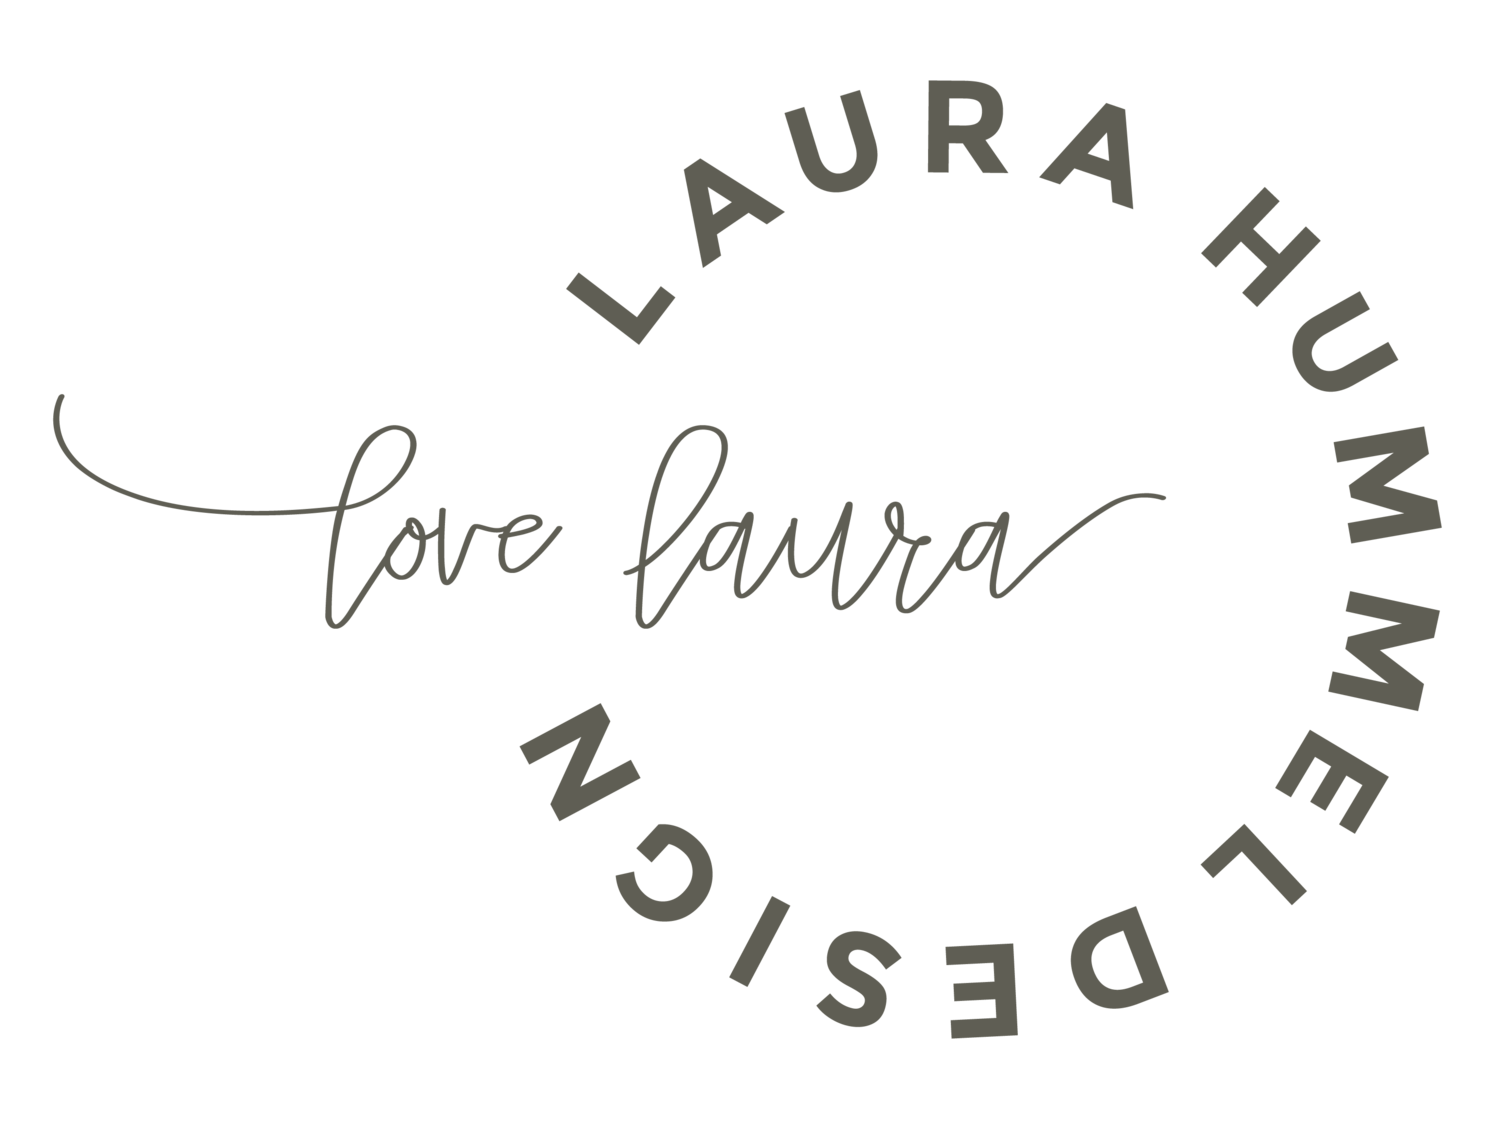 Love Laura Illustration & Design